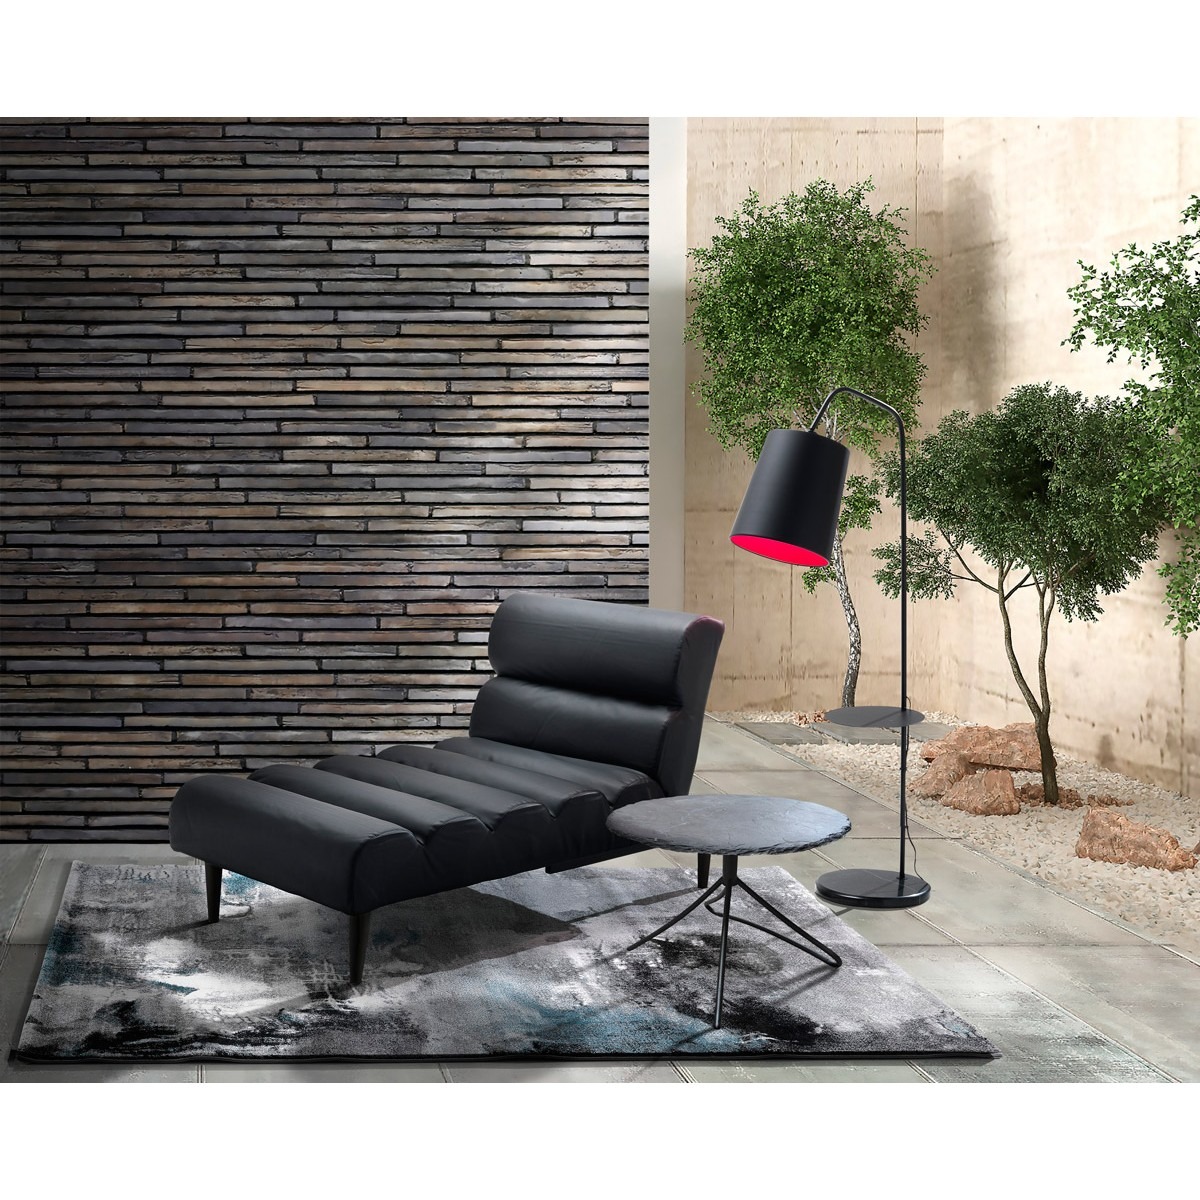 Chaise longue lettino design moderno in similpelle colore ...